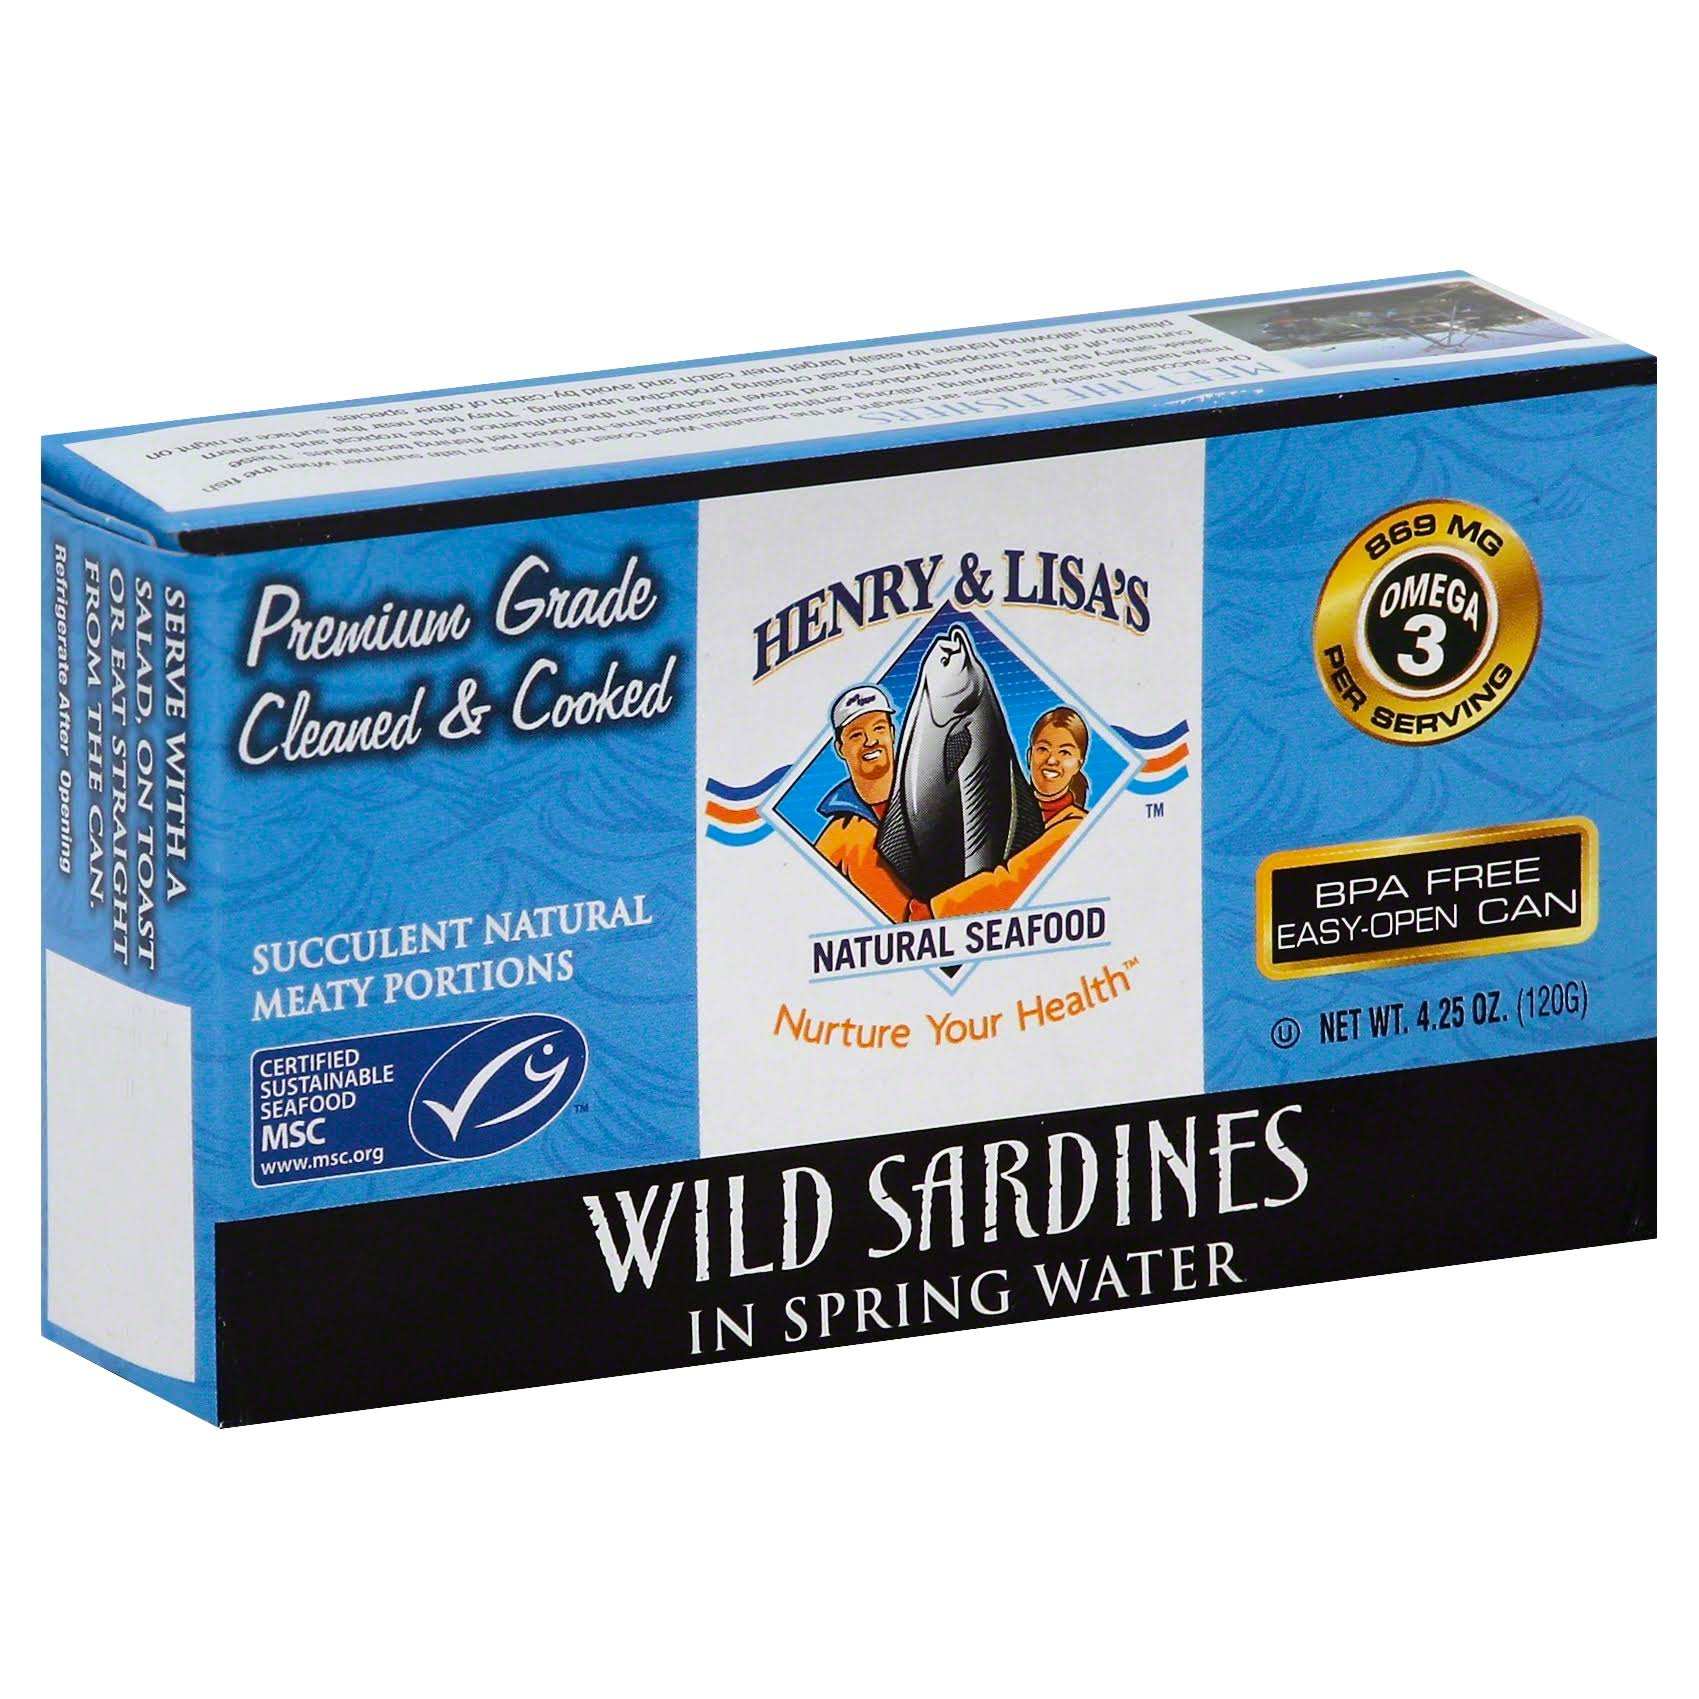 Henry and Lisa's Natural Seafood Wild Sardines - in Spring Water, 4.25oz